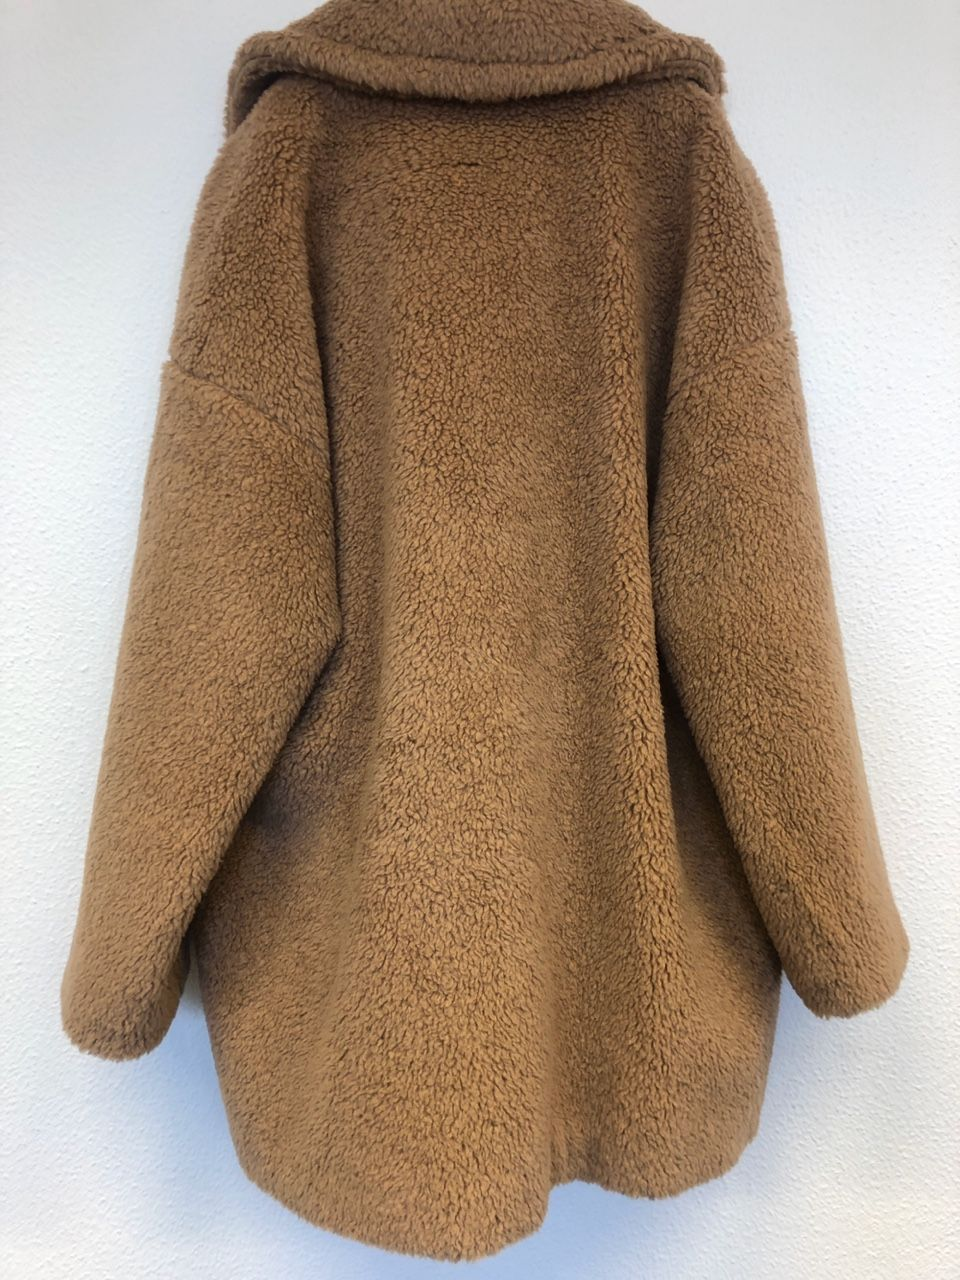 Weekend Max Mara Damen Teddy-Jacke Affine camel engelhorn-Weekend-Max-Mara-Damen-Teddy-Jacke-Affin